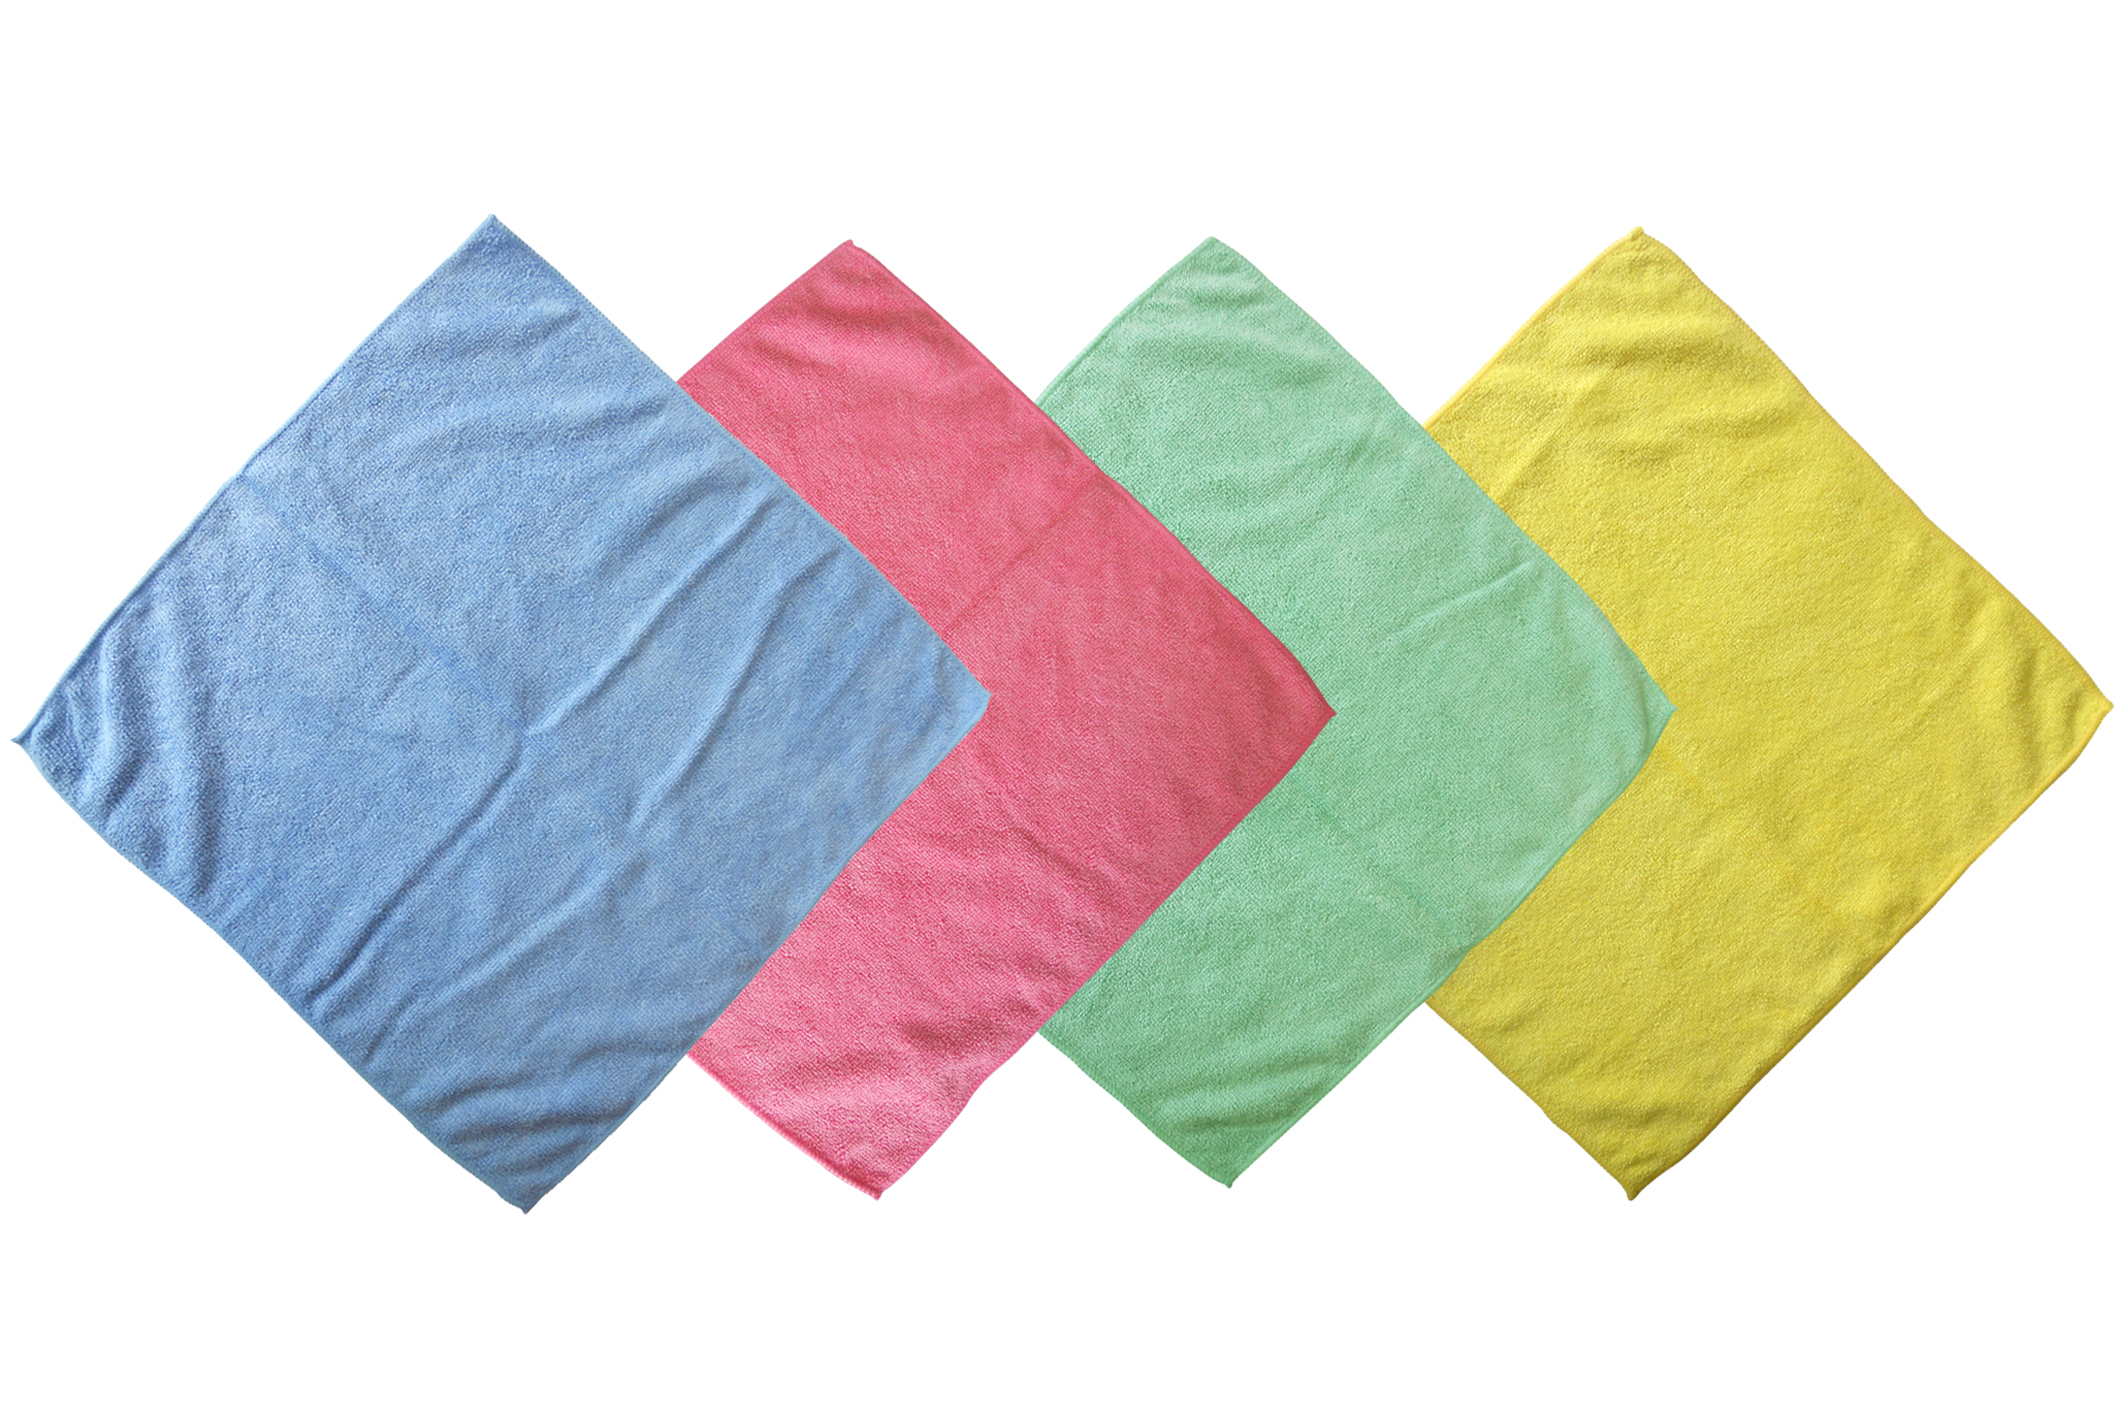 Microfibre G/P Cloths